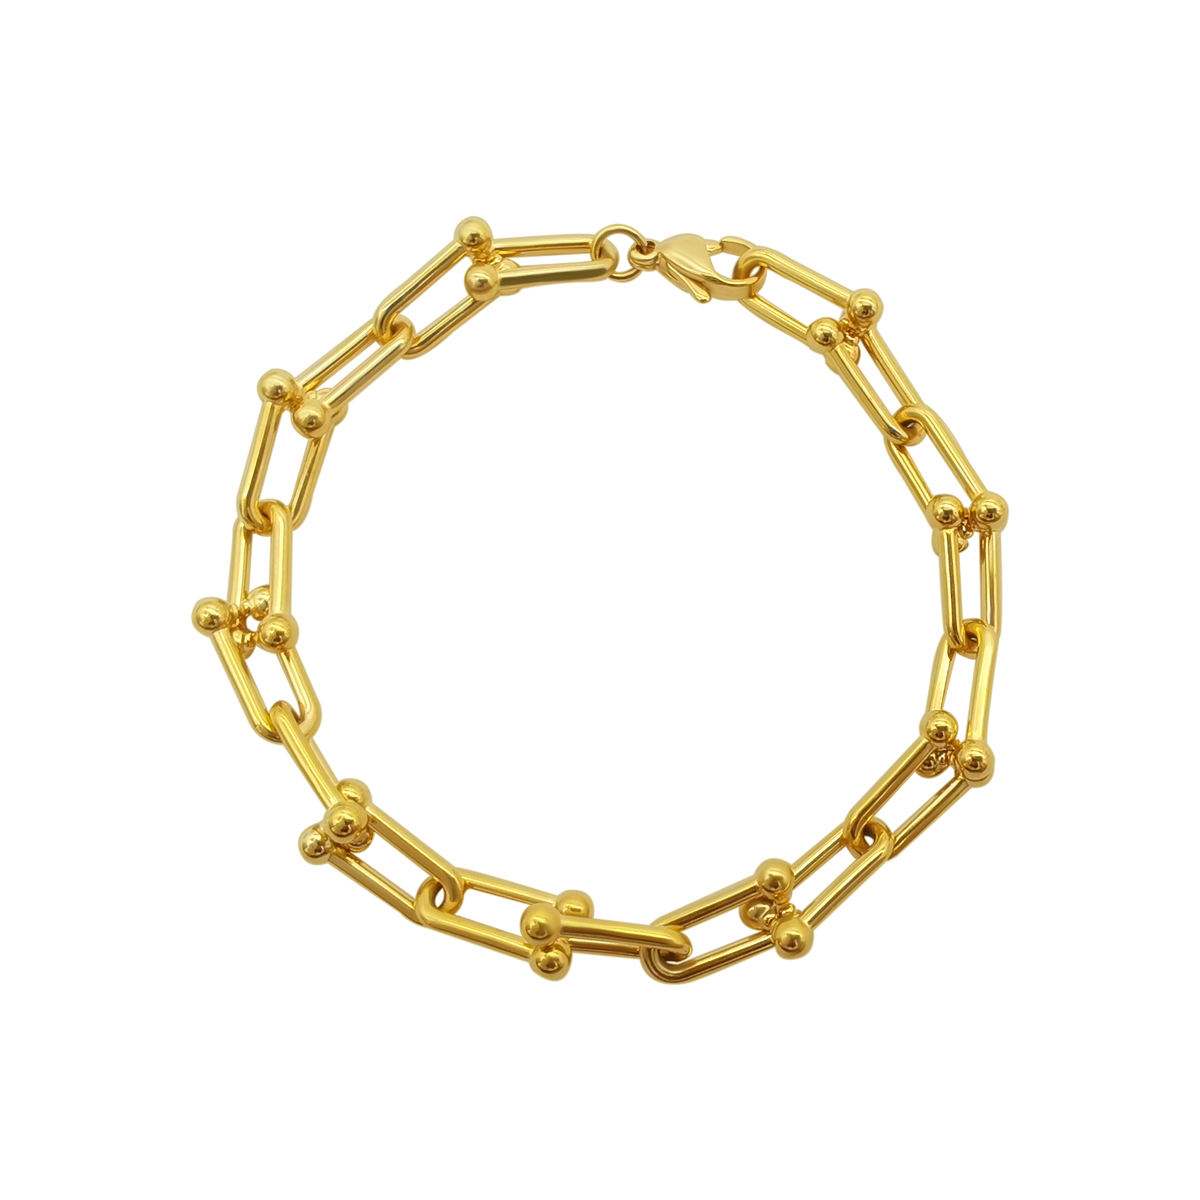 High Quality Fashion Jewelry Gold Color Plated Stainless Steel Link Chain Bracelet